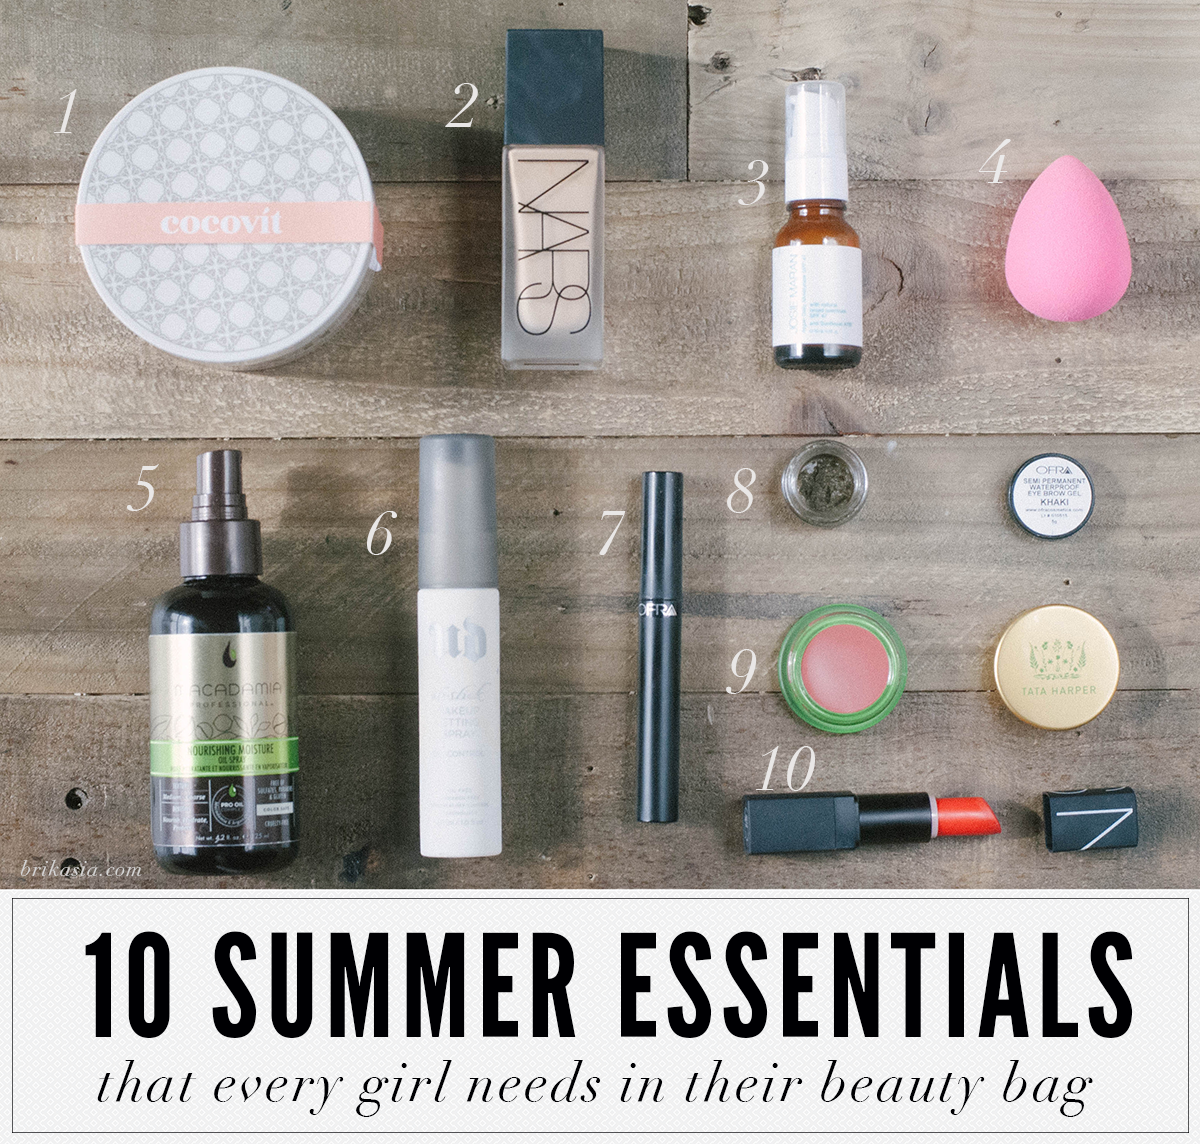 best summer beauty products, makeup products that last in the summer, long wearing beauty products, curly hair essentials